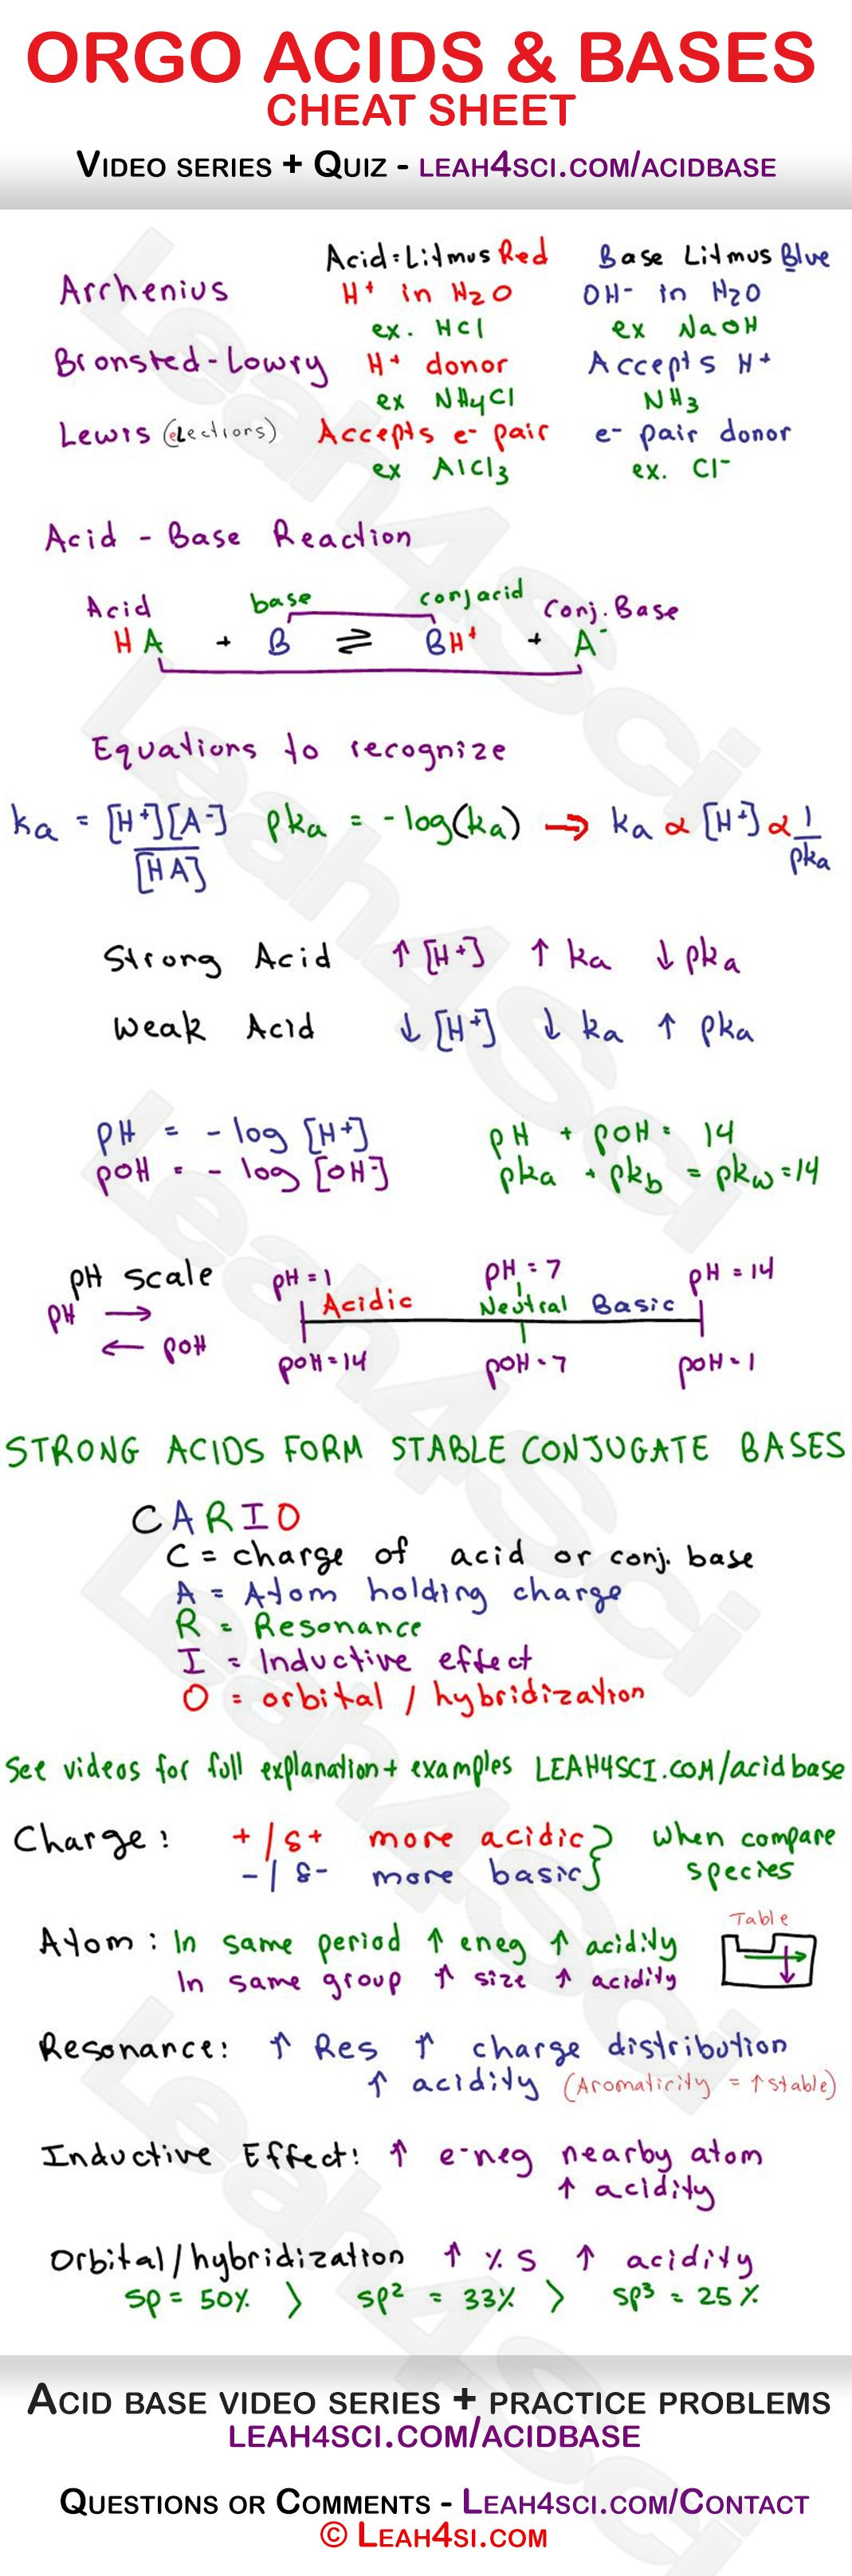 Worksheets Bronsted-lowry Acids And Bases Worksheet acids and bases in organic chemistry arrhenius bronsted lowry lewis and